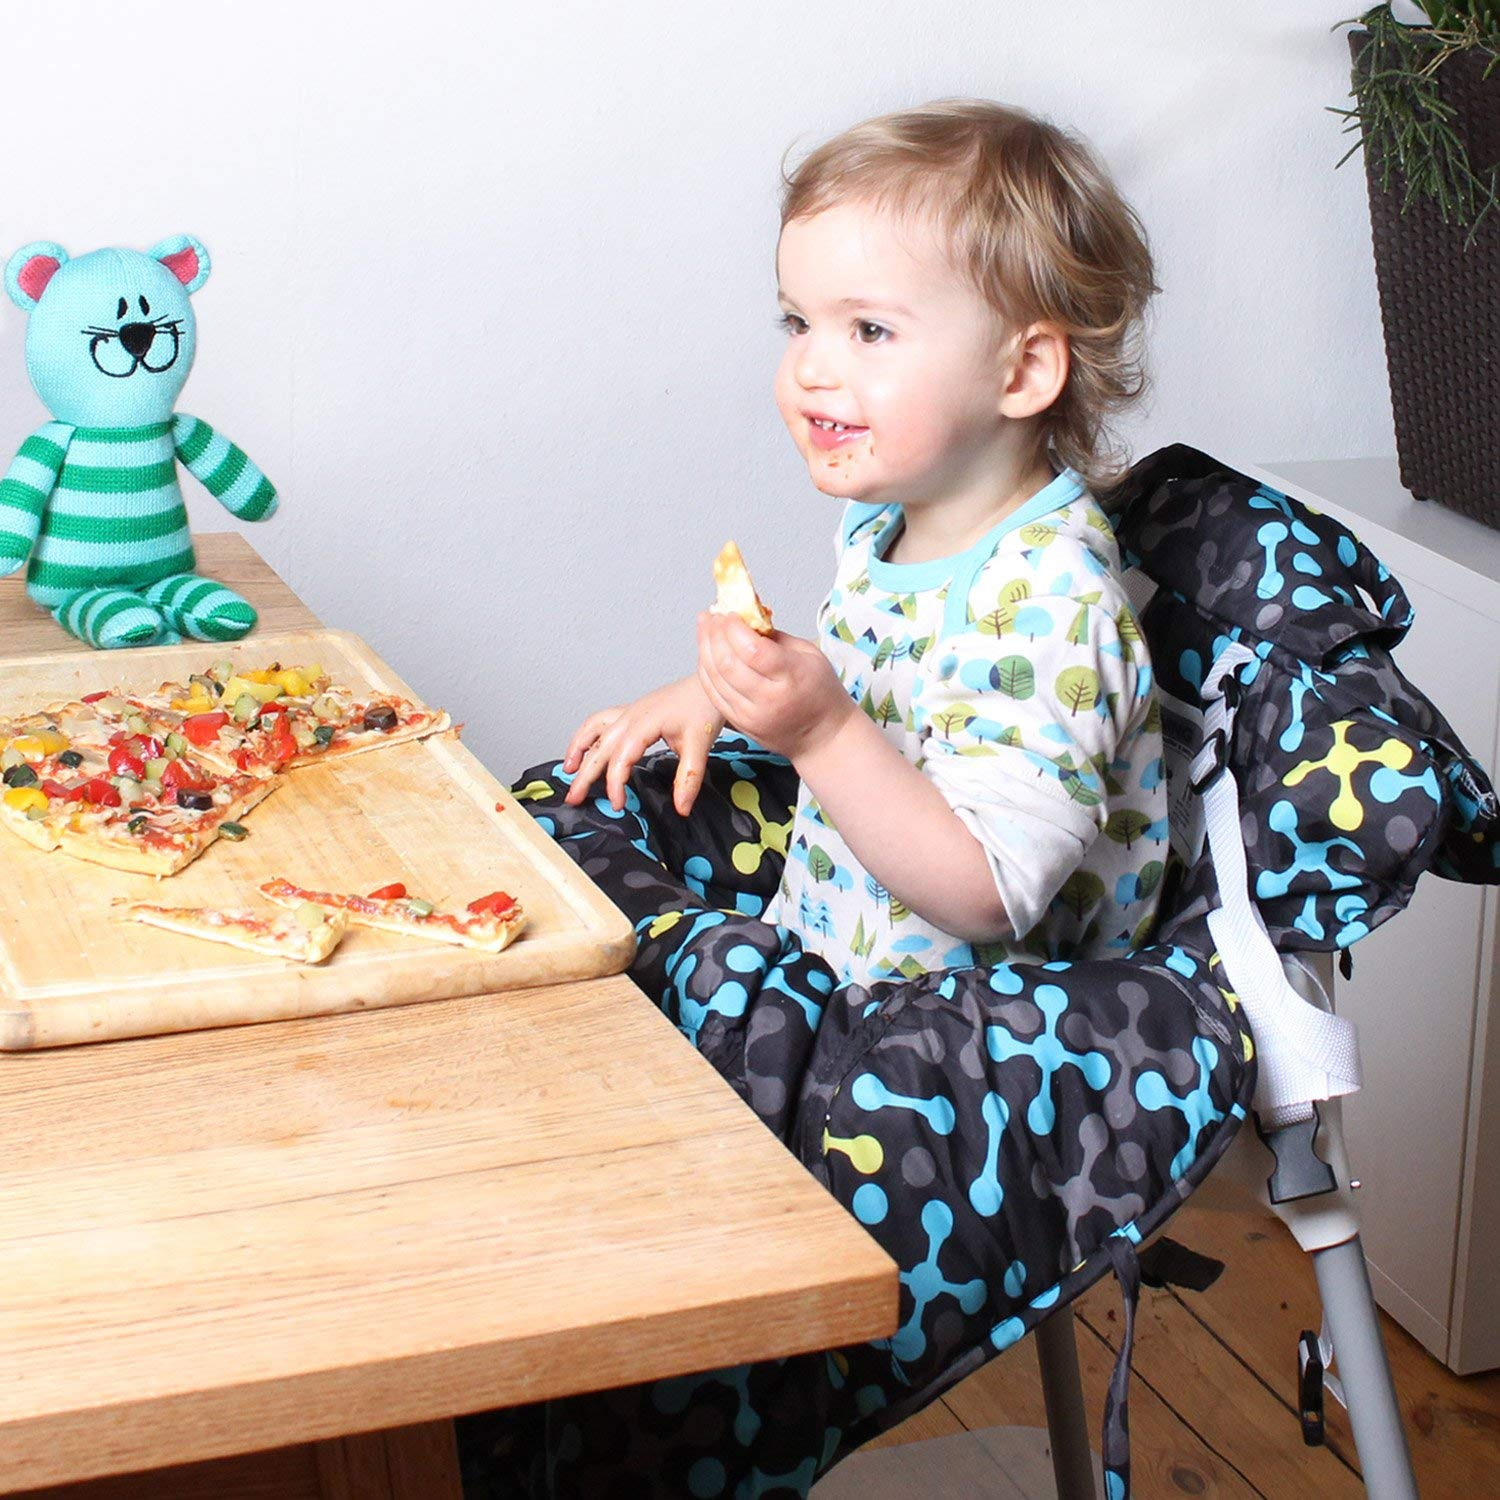 Soft Comfort Cushioning Universal Size Protects Against Germs Easy Install Premium Shopping Cart Cover /& High Chair Cover Harness System Whale